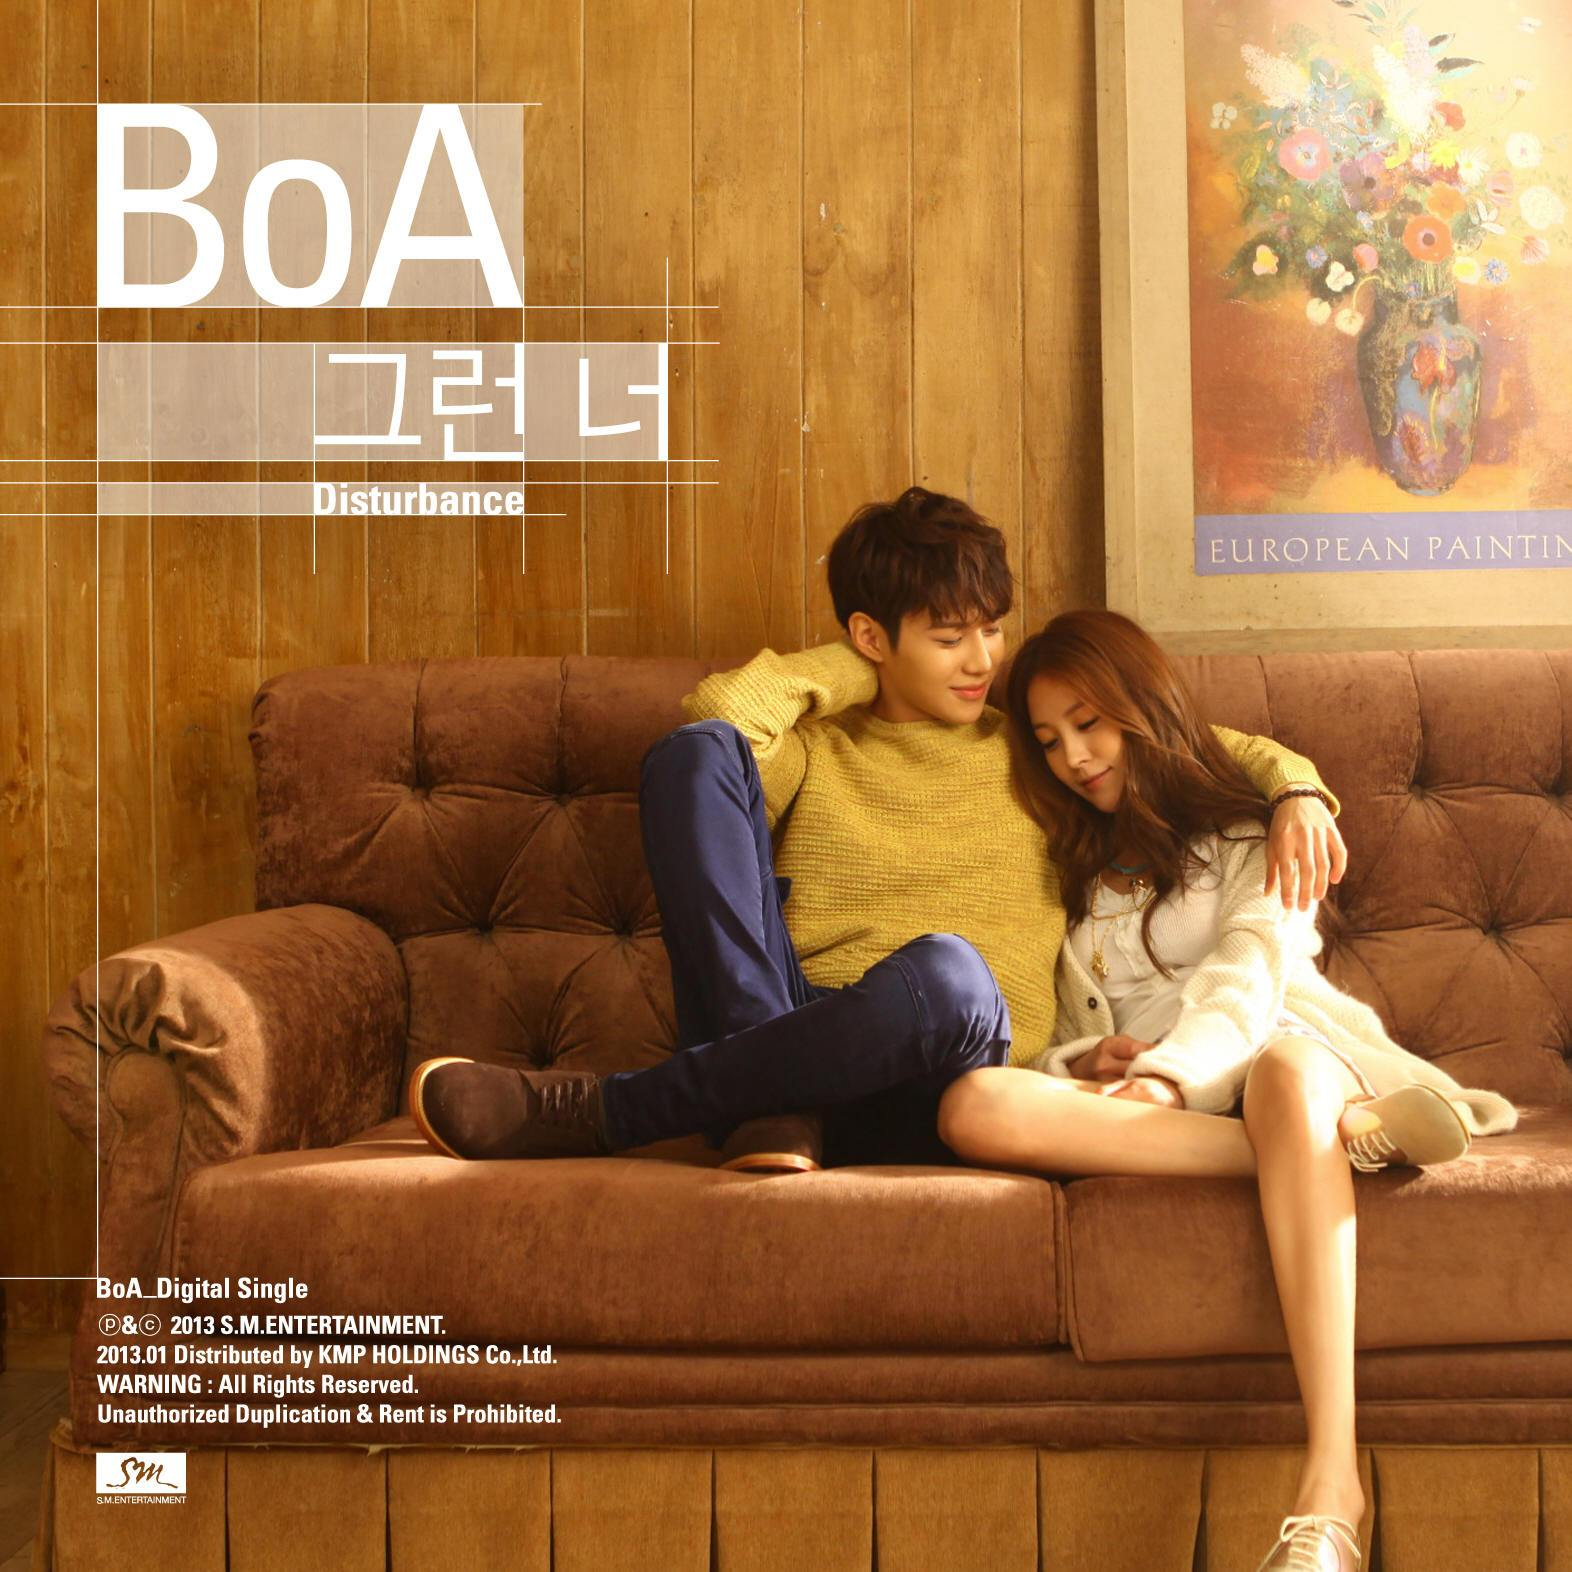 [Single] BoA - Disturbance